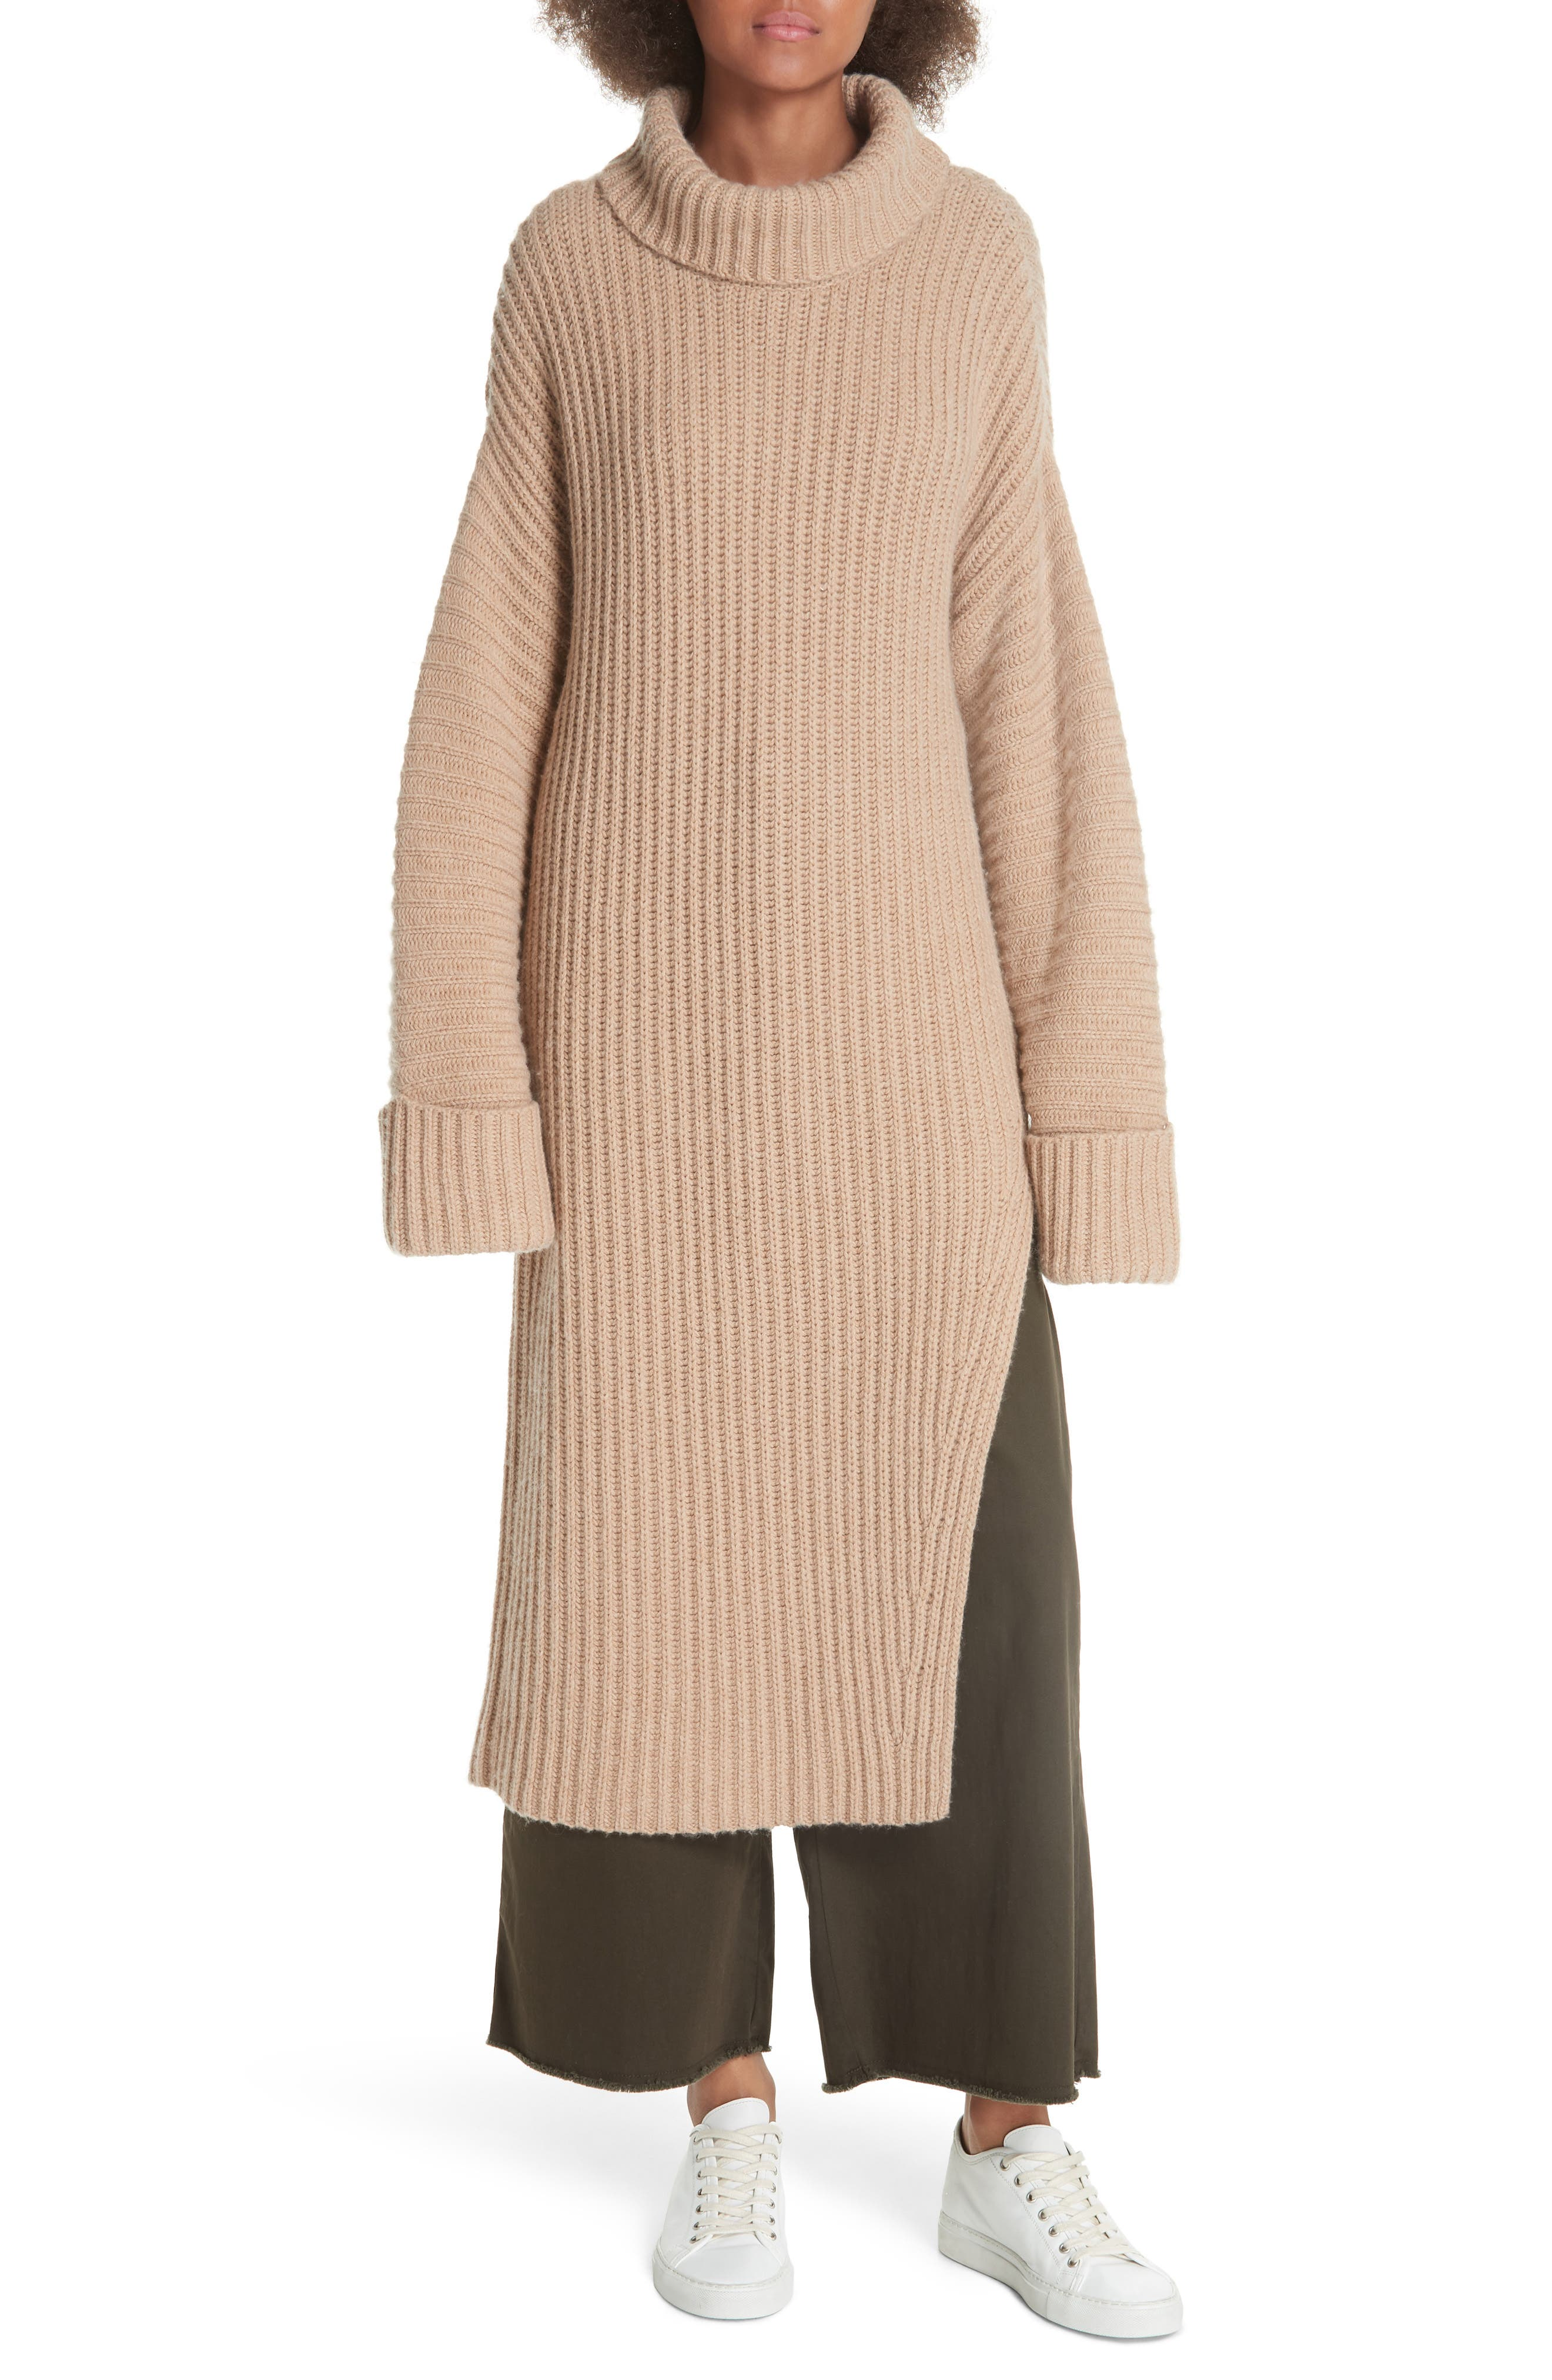 ELIZABETH AND JAMES,                             Mae Wool & Cashmere Sweater,                             Main thumbnail 1, color,                             250